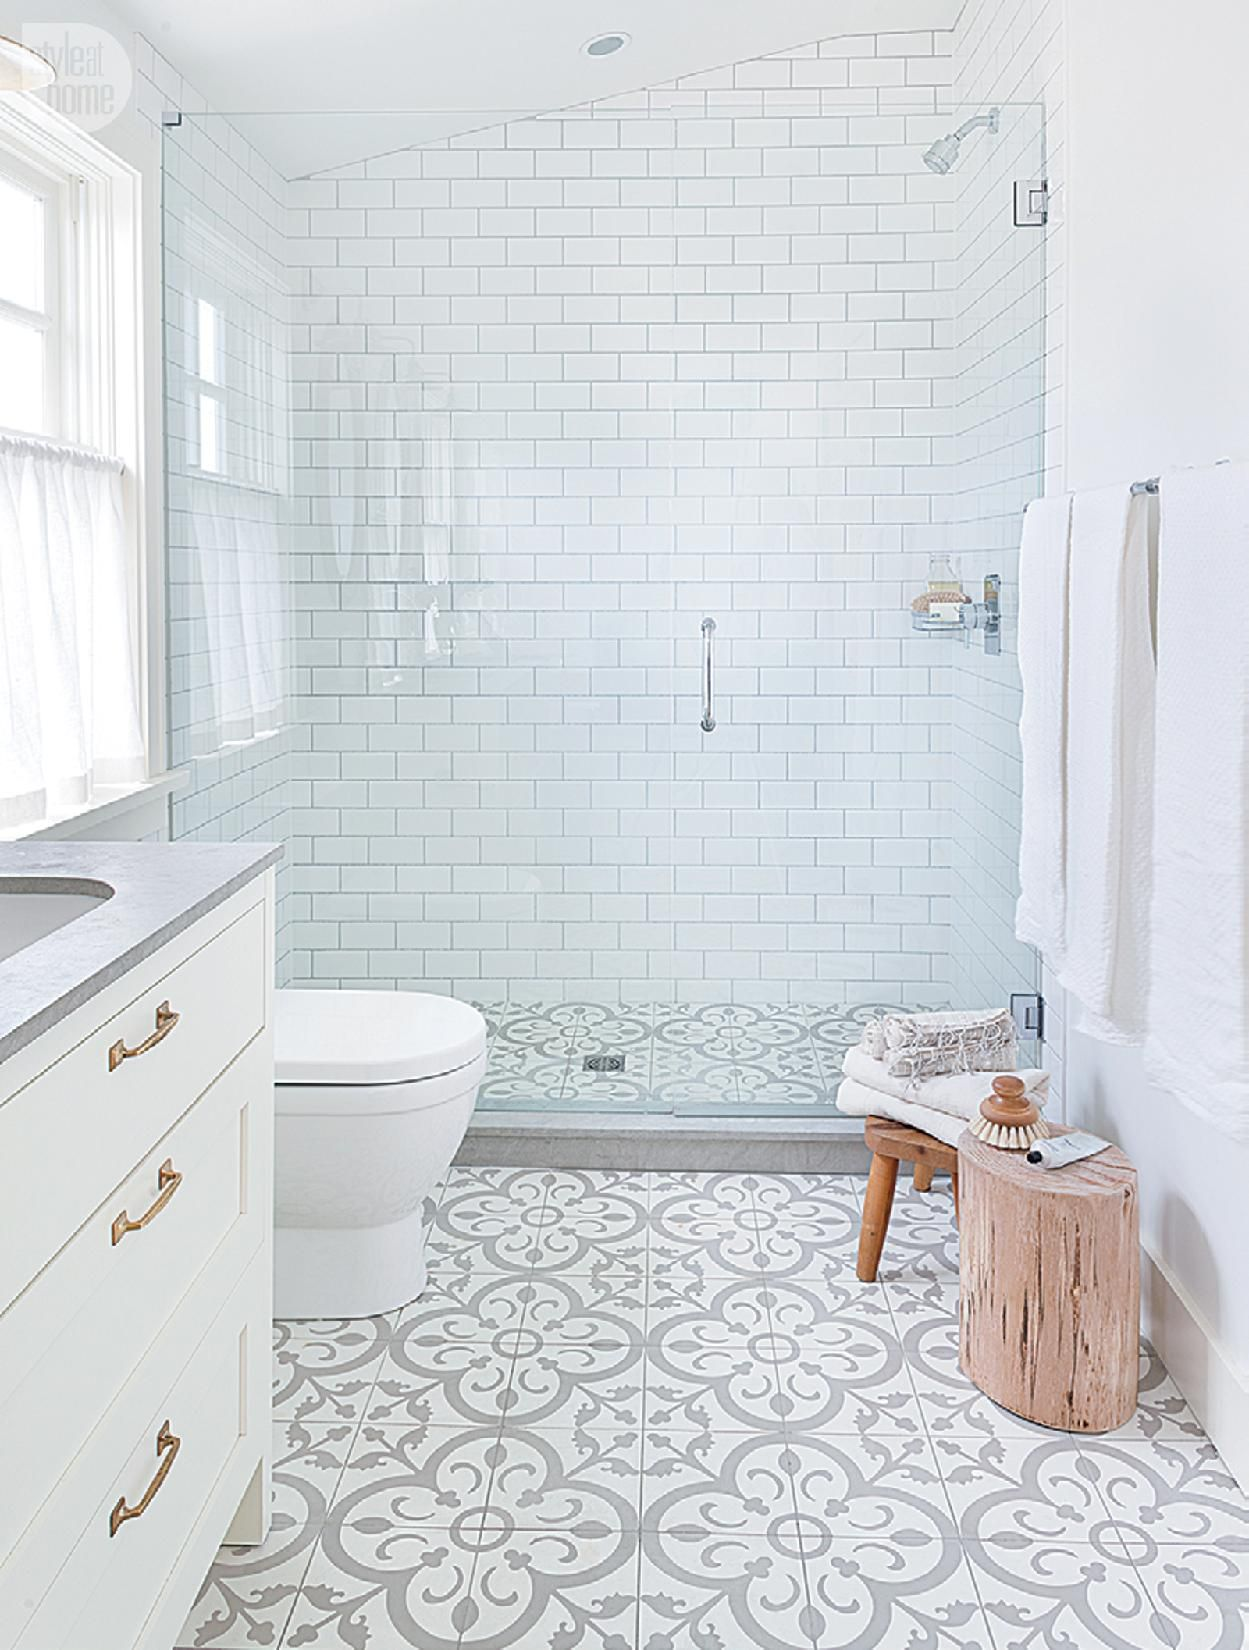 Ornate Bathroom Floor Tiles   House Tour: Modern Eclectic Family Home